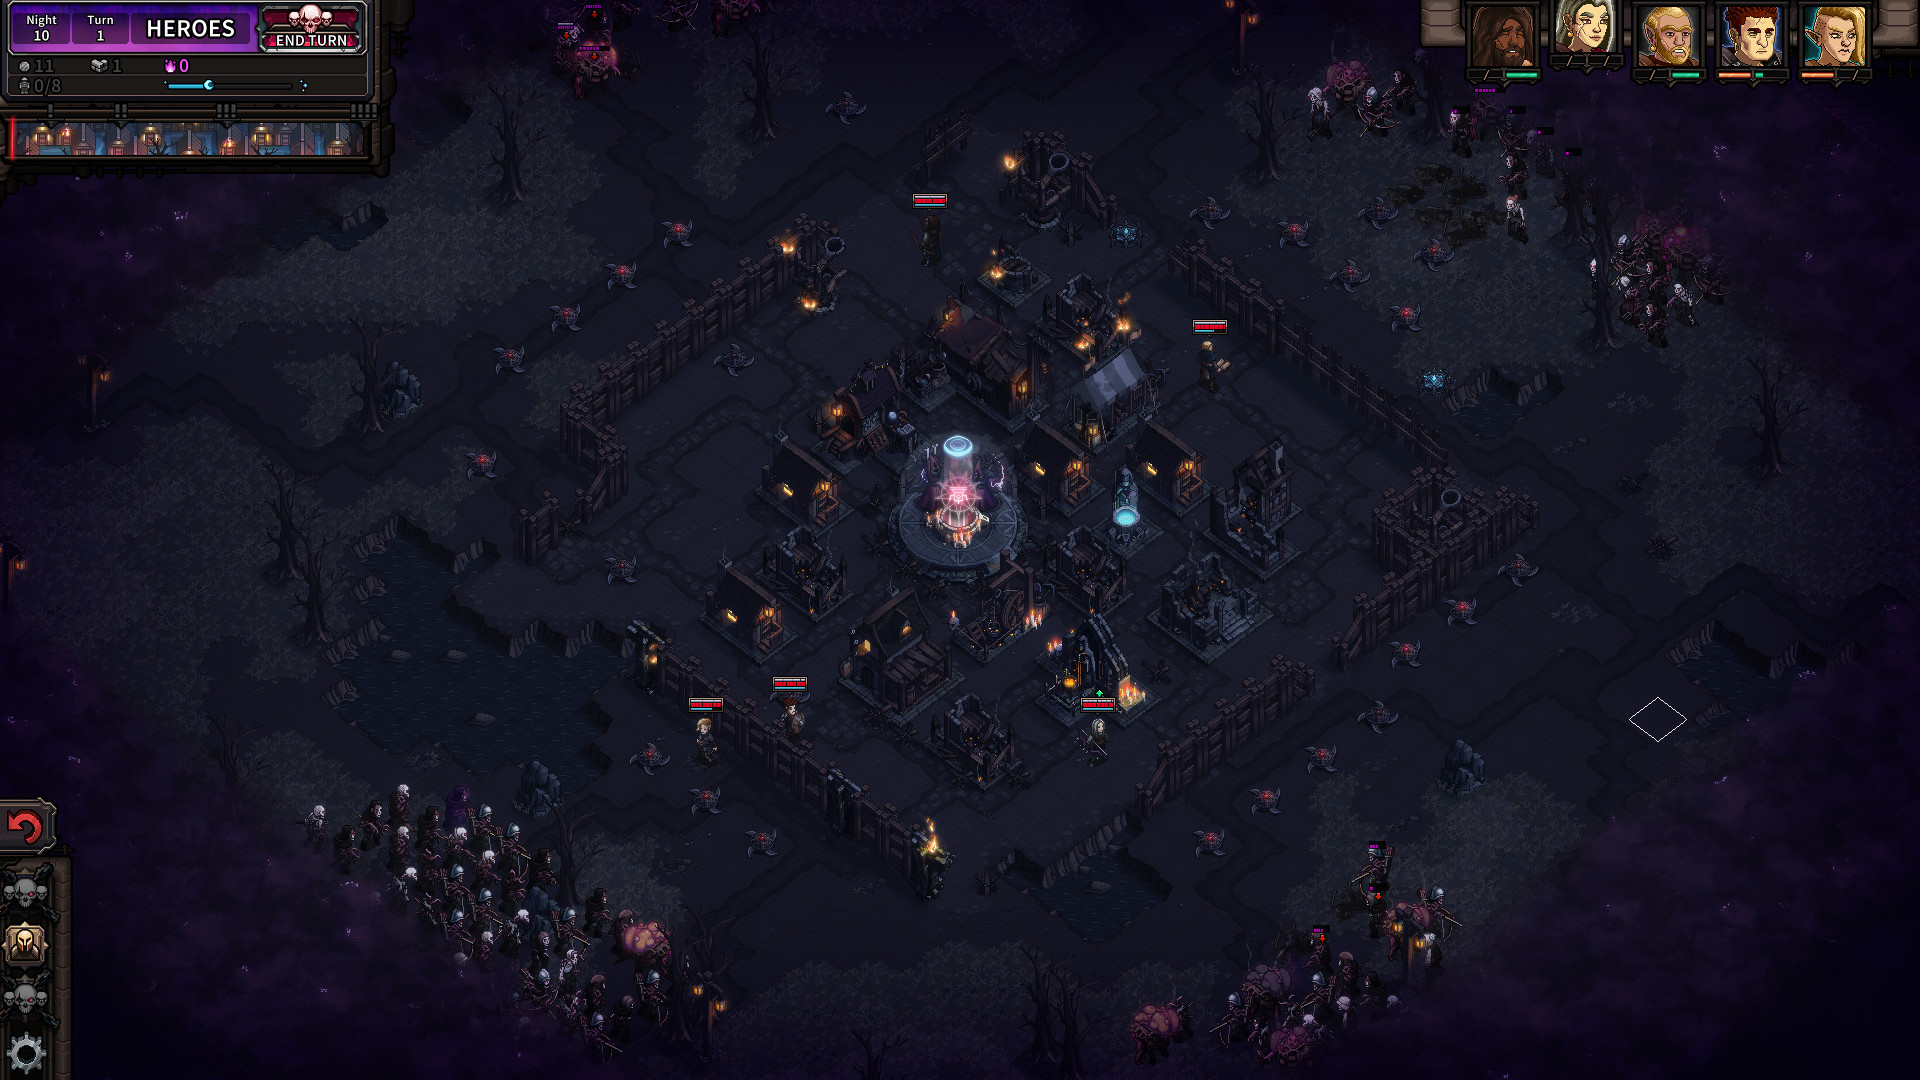 Armies will soon collide in a dark world in The Last Spell.